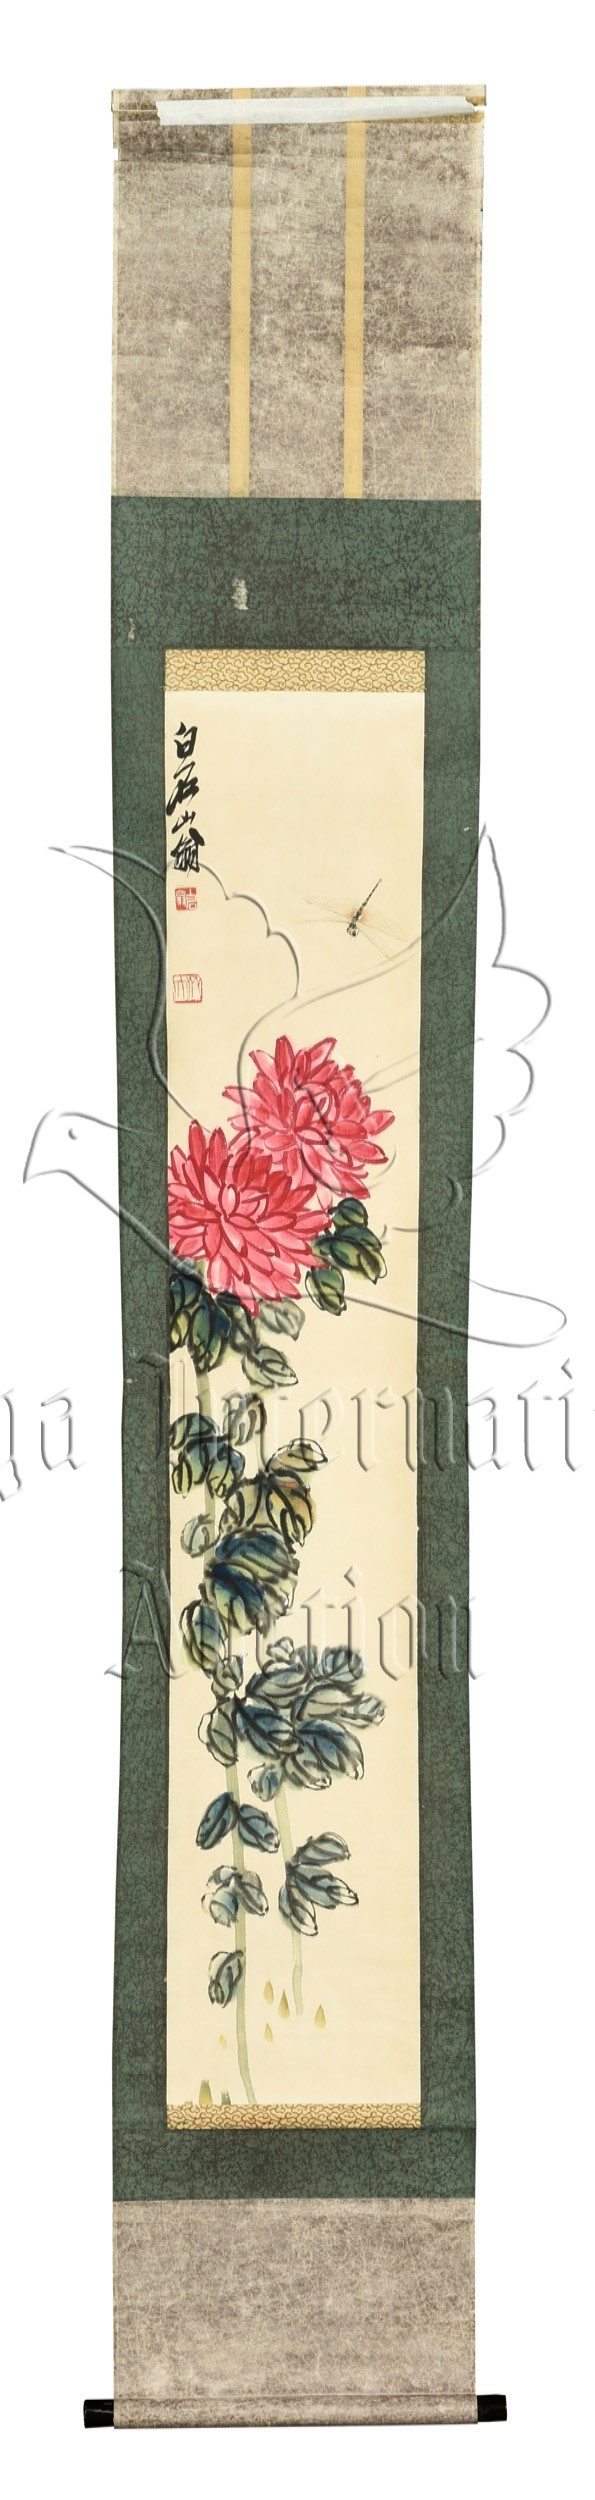 QI BAISHI: INK AND COLOR ON PAPER PAINTING 'FLOWERS'